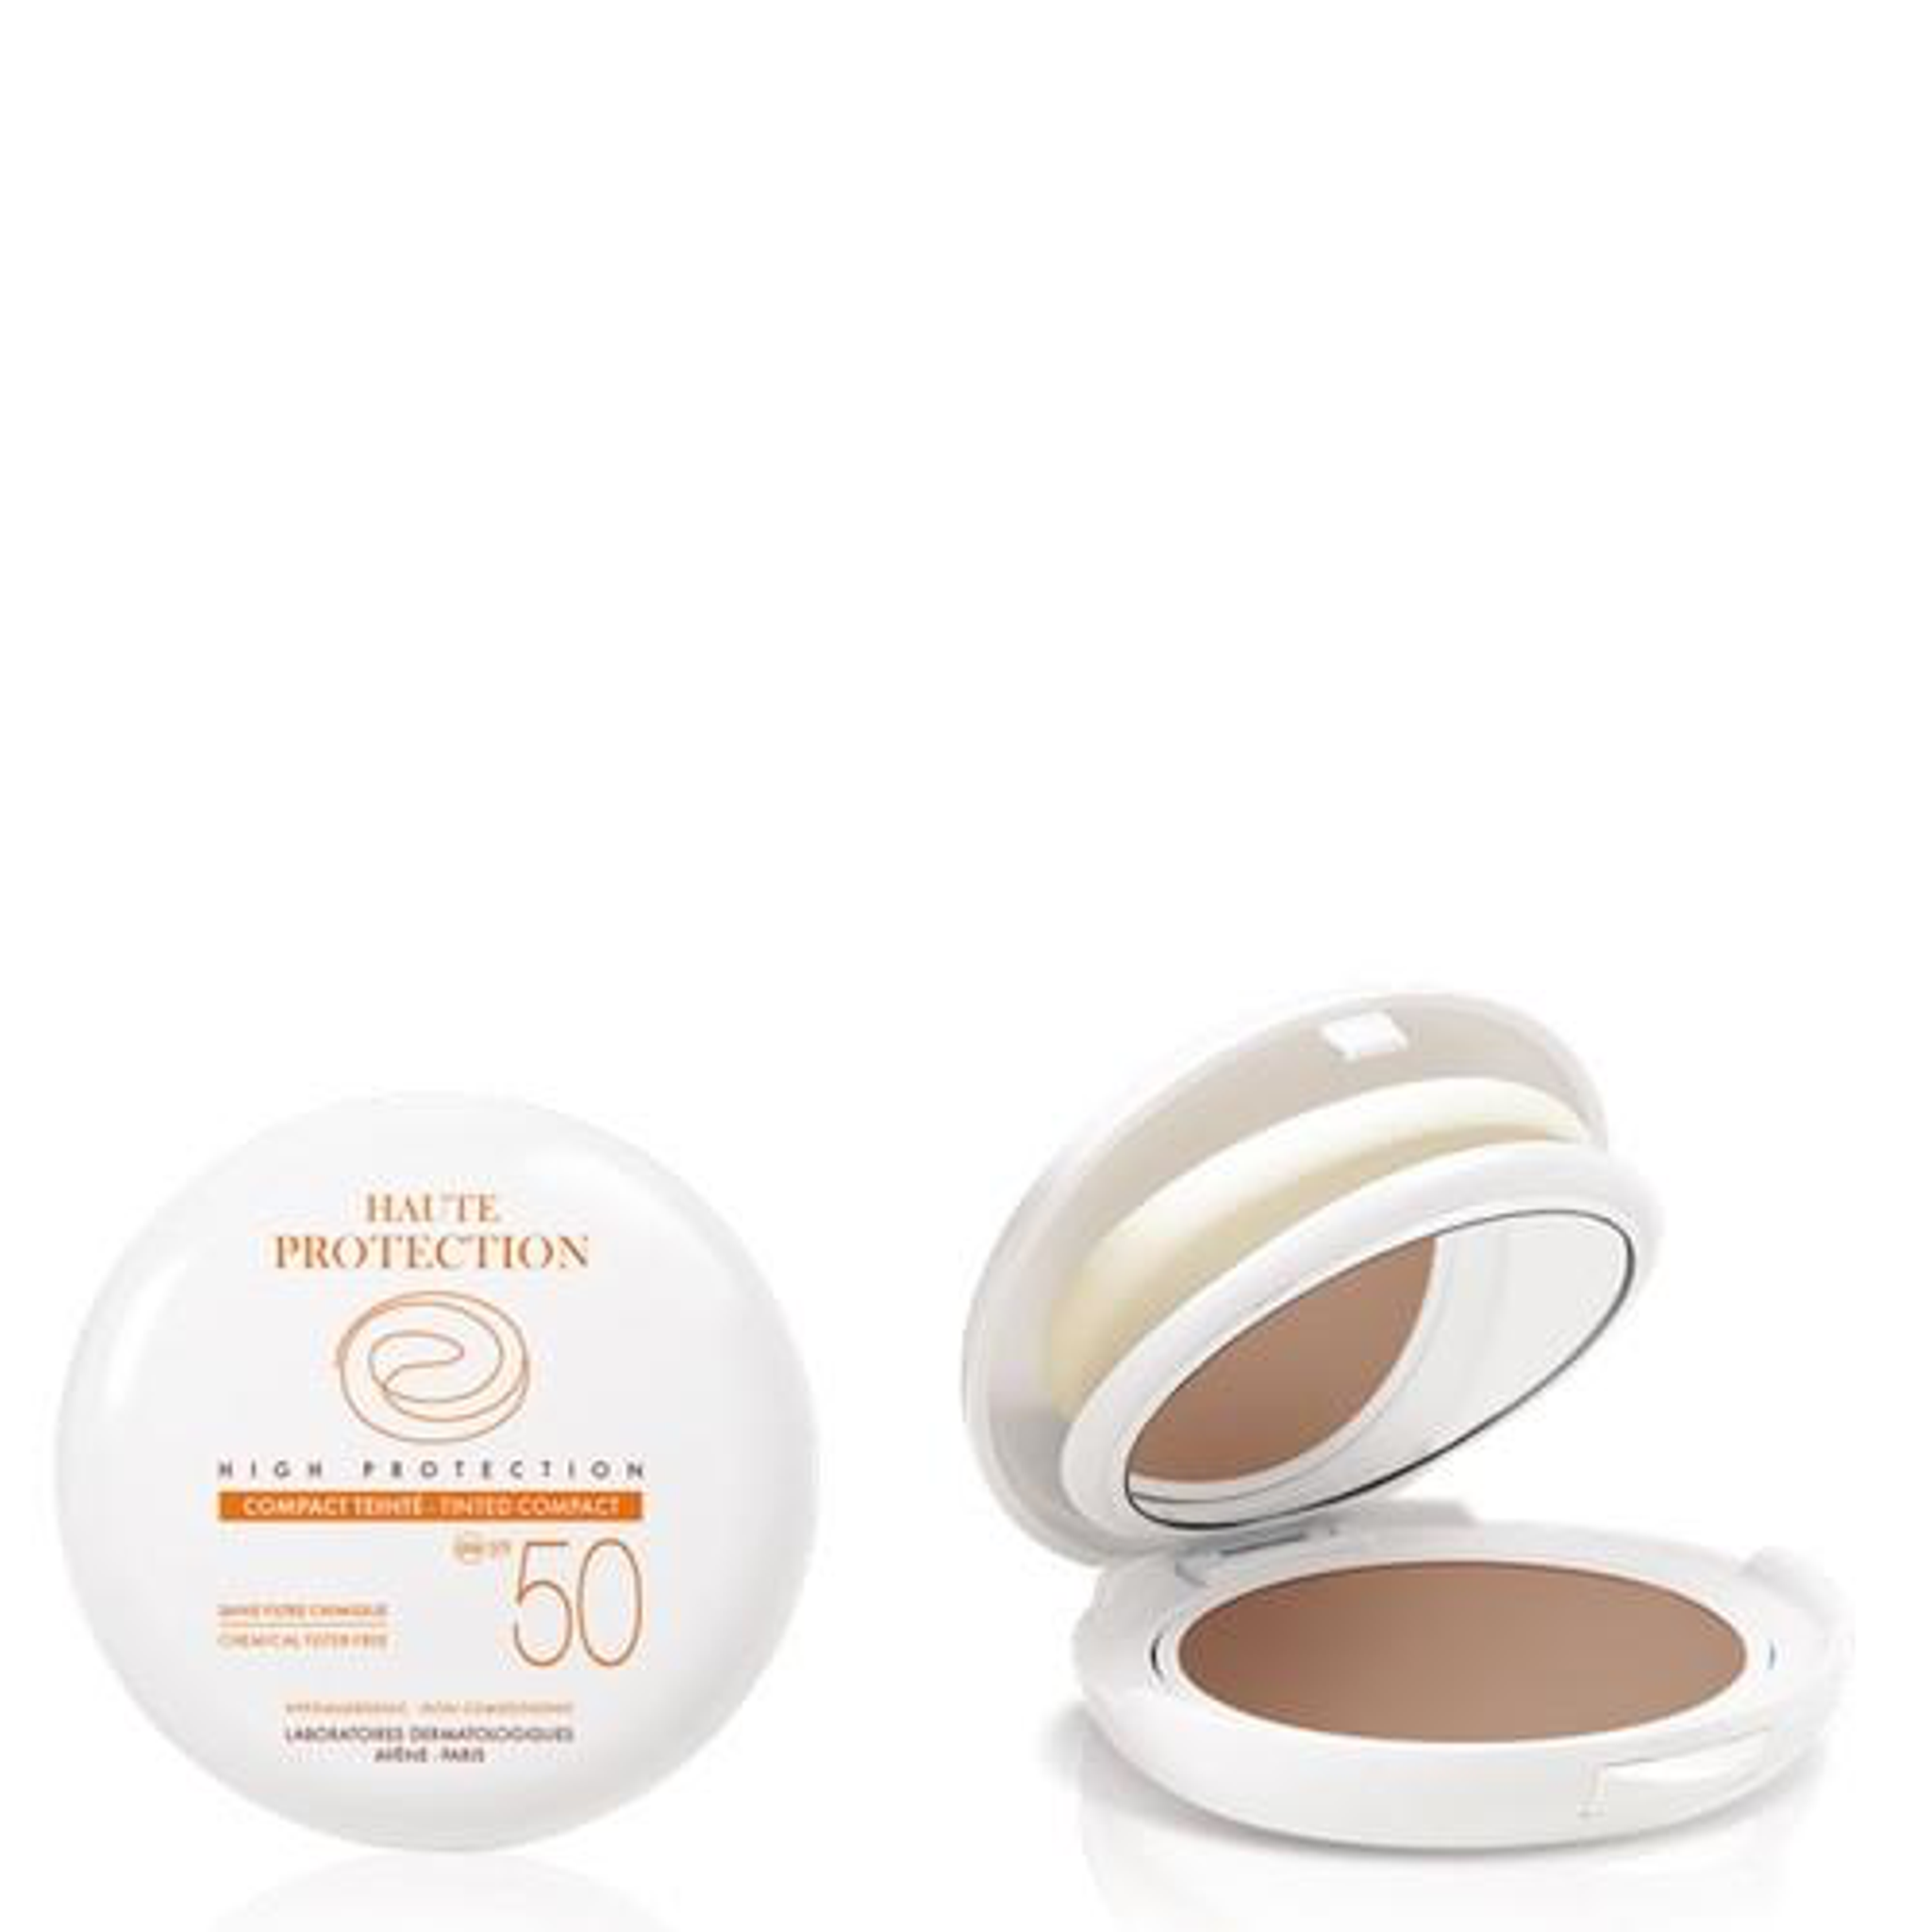 Avene Mineral High Protection Tinted Compact SPF 50 - Honey